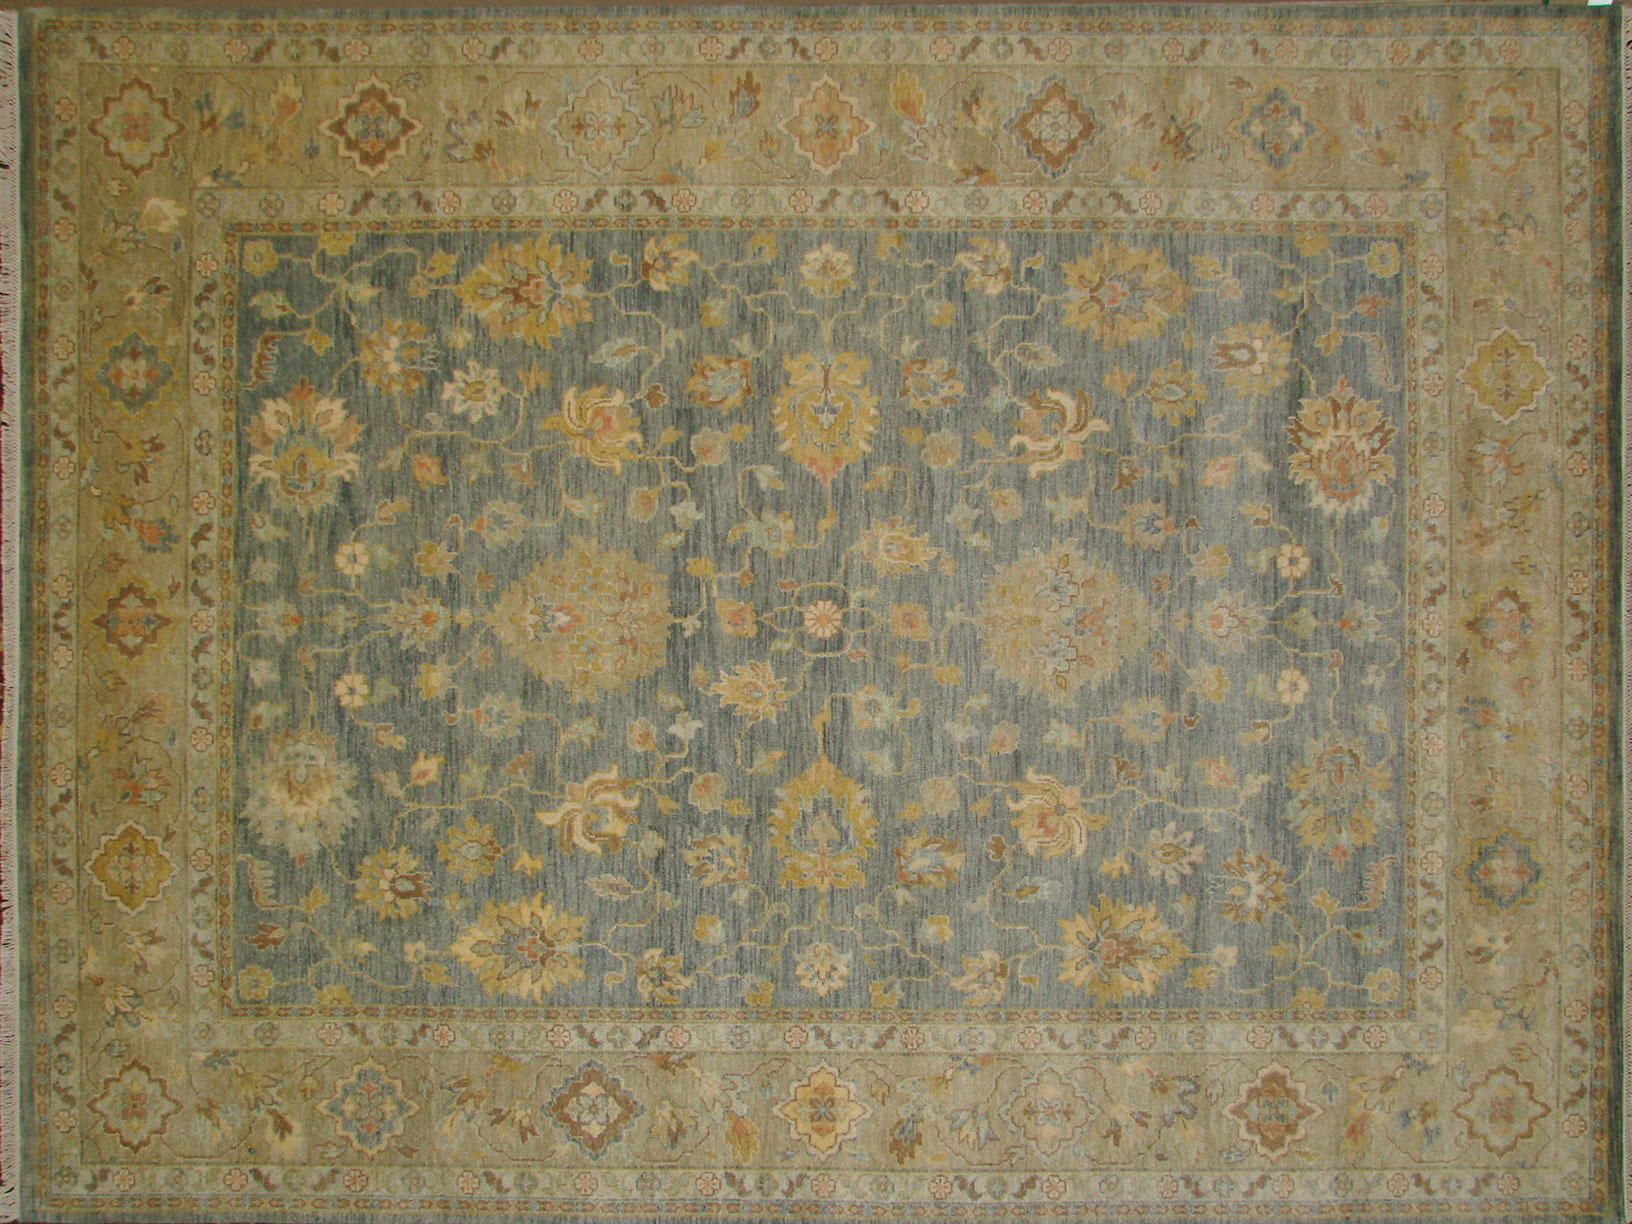 9x12 Traditional Hand Knotted Wool Area Rug - MR18401